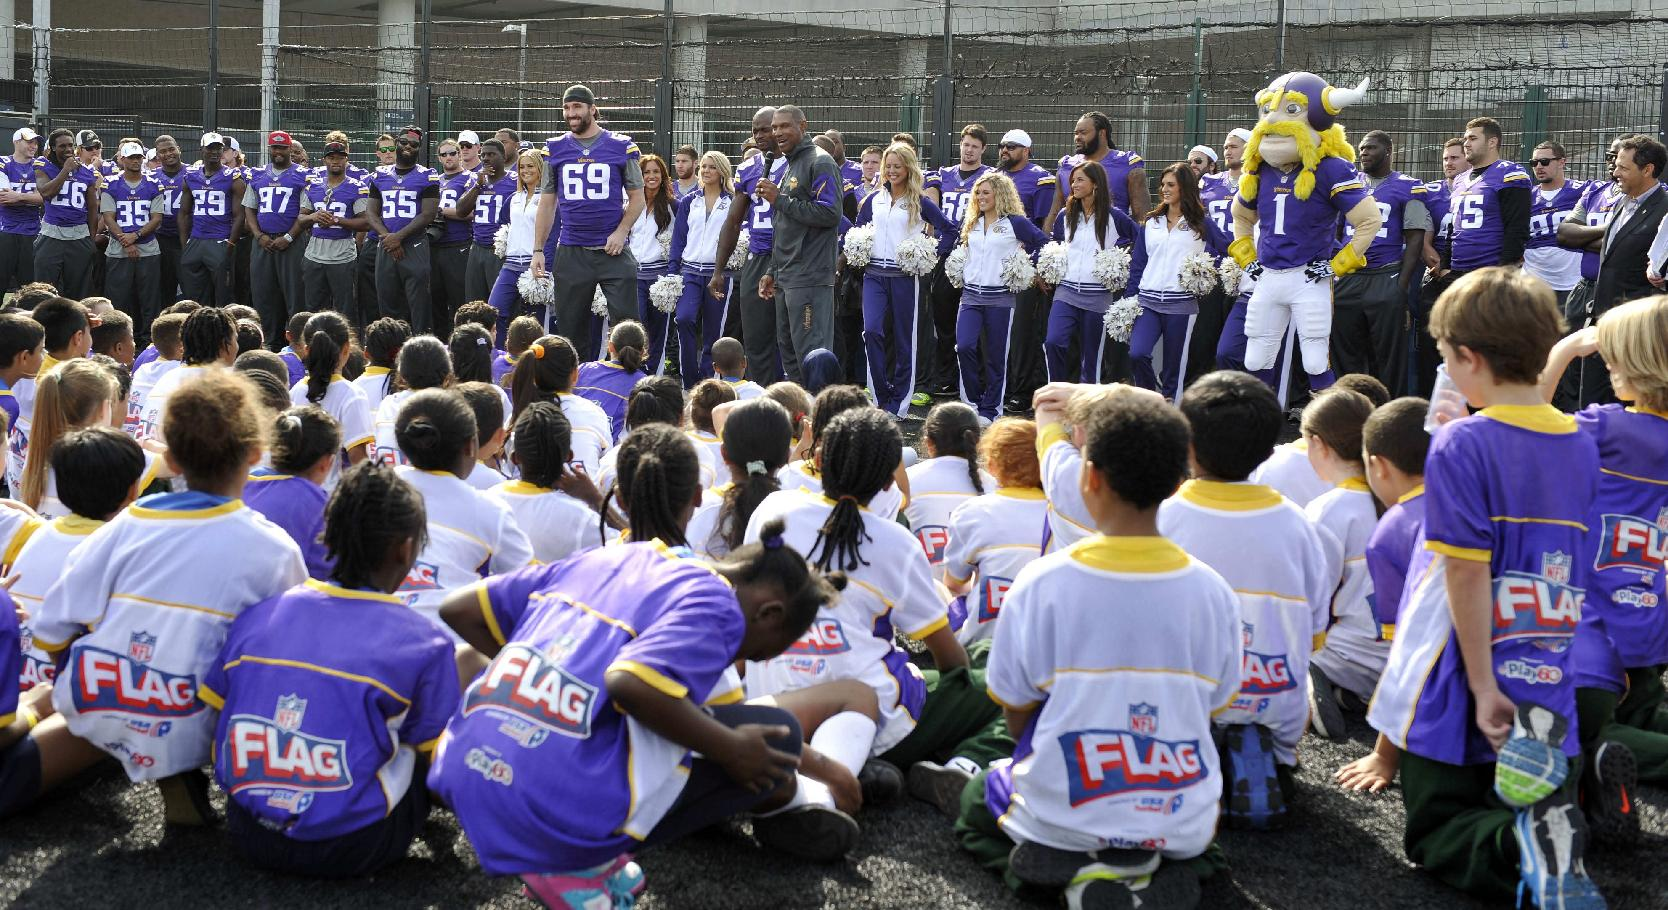 Head coach of the Vikings Leslie Frazier addresses the children during a coaching clinic with London children near Wembley Stadium, London, Tuesday Sept. 24, 2013. The Pittsburgh Steelers are to play the Minnesota Vikings in the NFL International Series at Wembley Stadium in London on Sunday, Sept 29